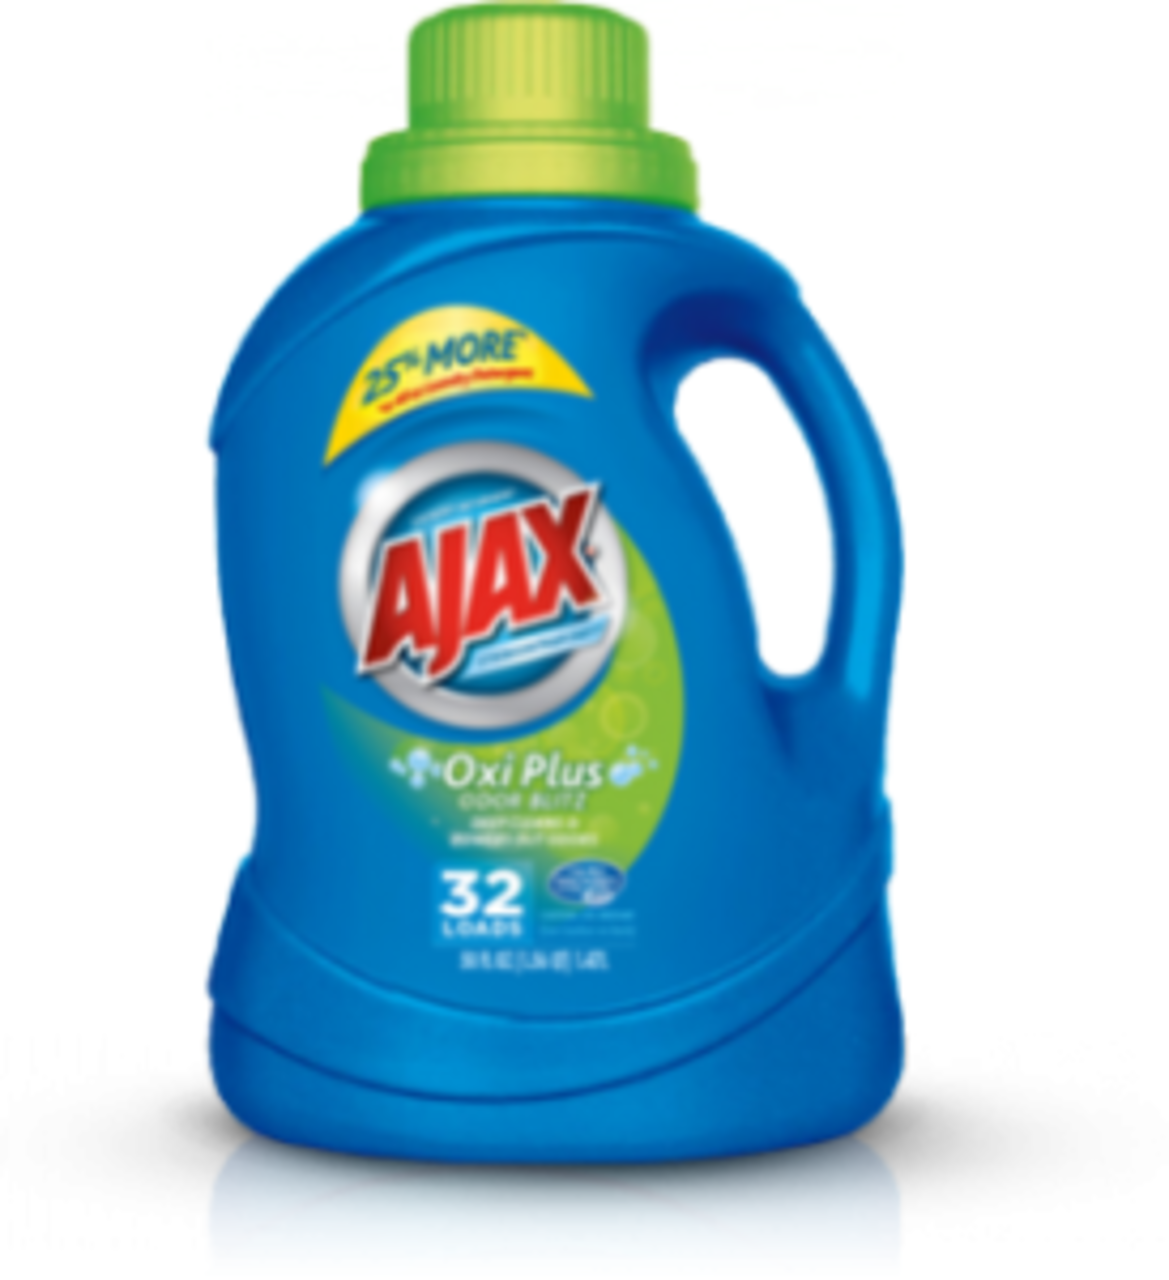 1 1 Ajax Laundry Detergent Coupon 1 50 At Walmart Http Thefrugalfind Com 11 Ajax Laundry Detergent Cou Ajax Laundry Detergent Coupons Restaurant Coupons